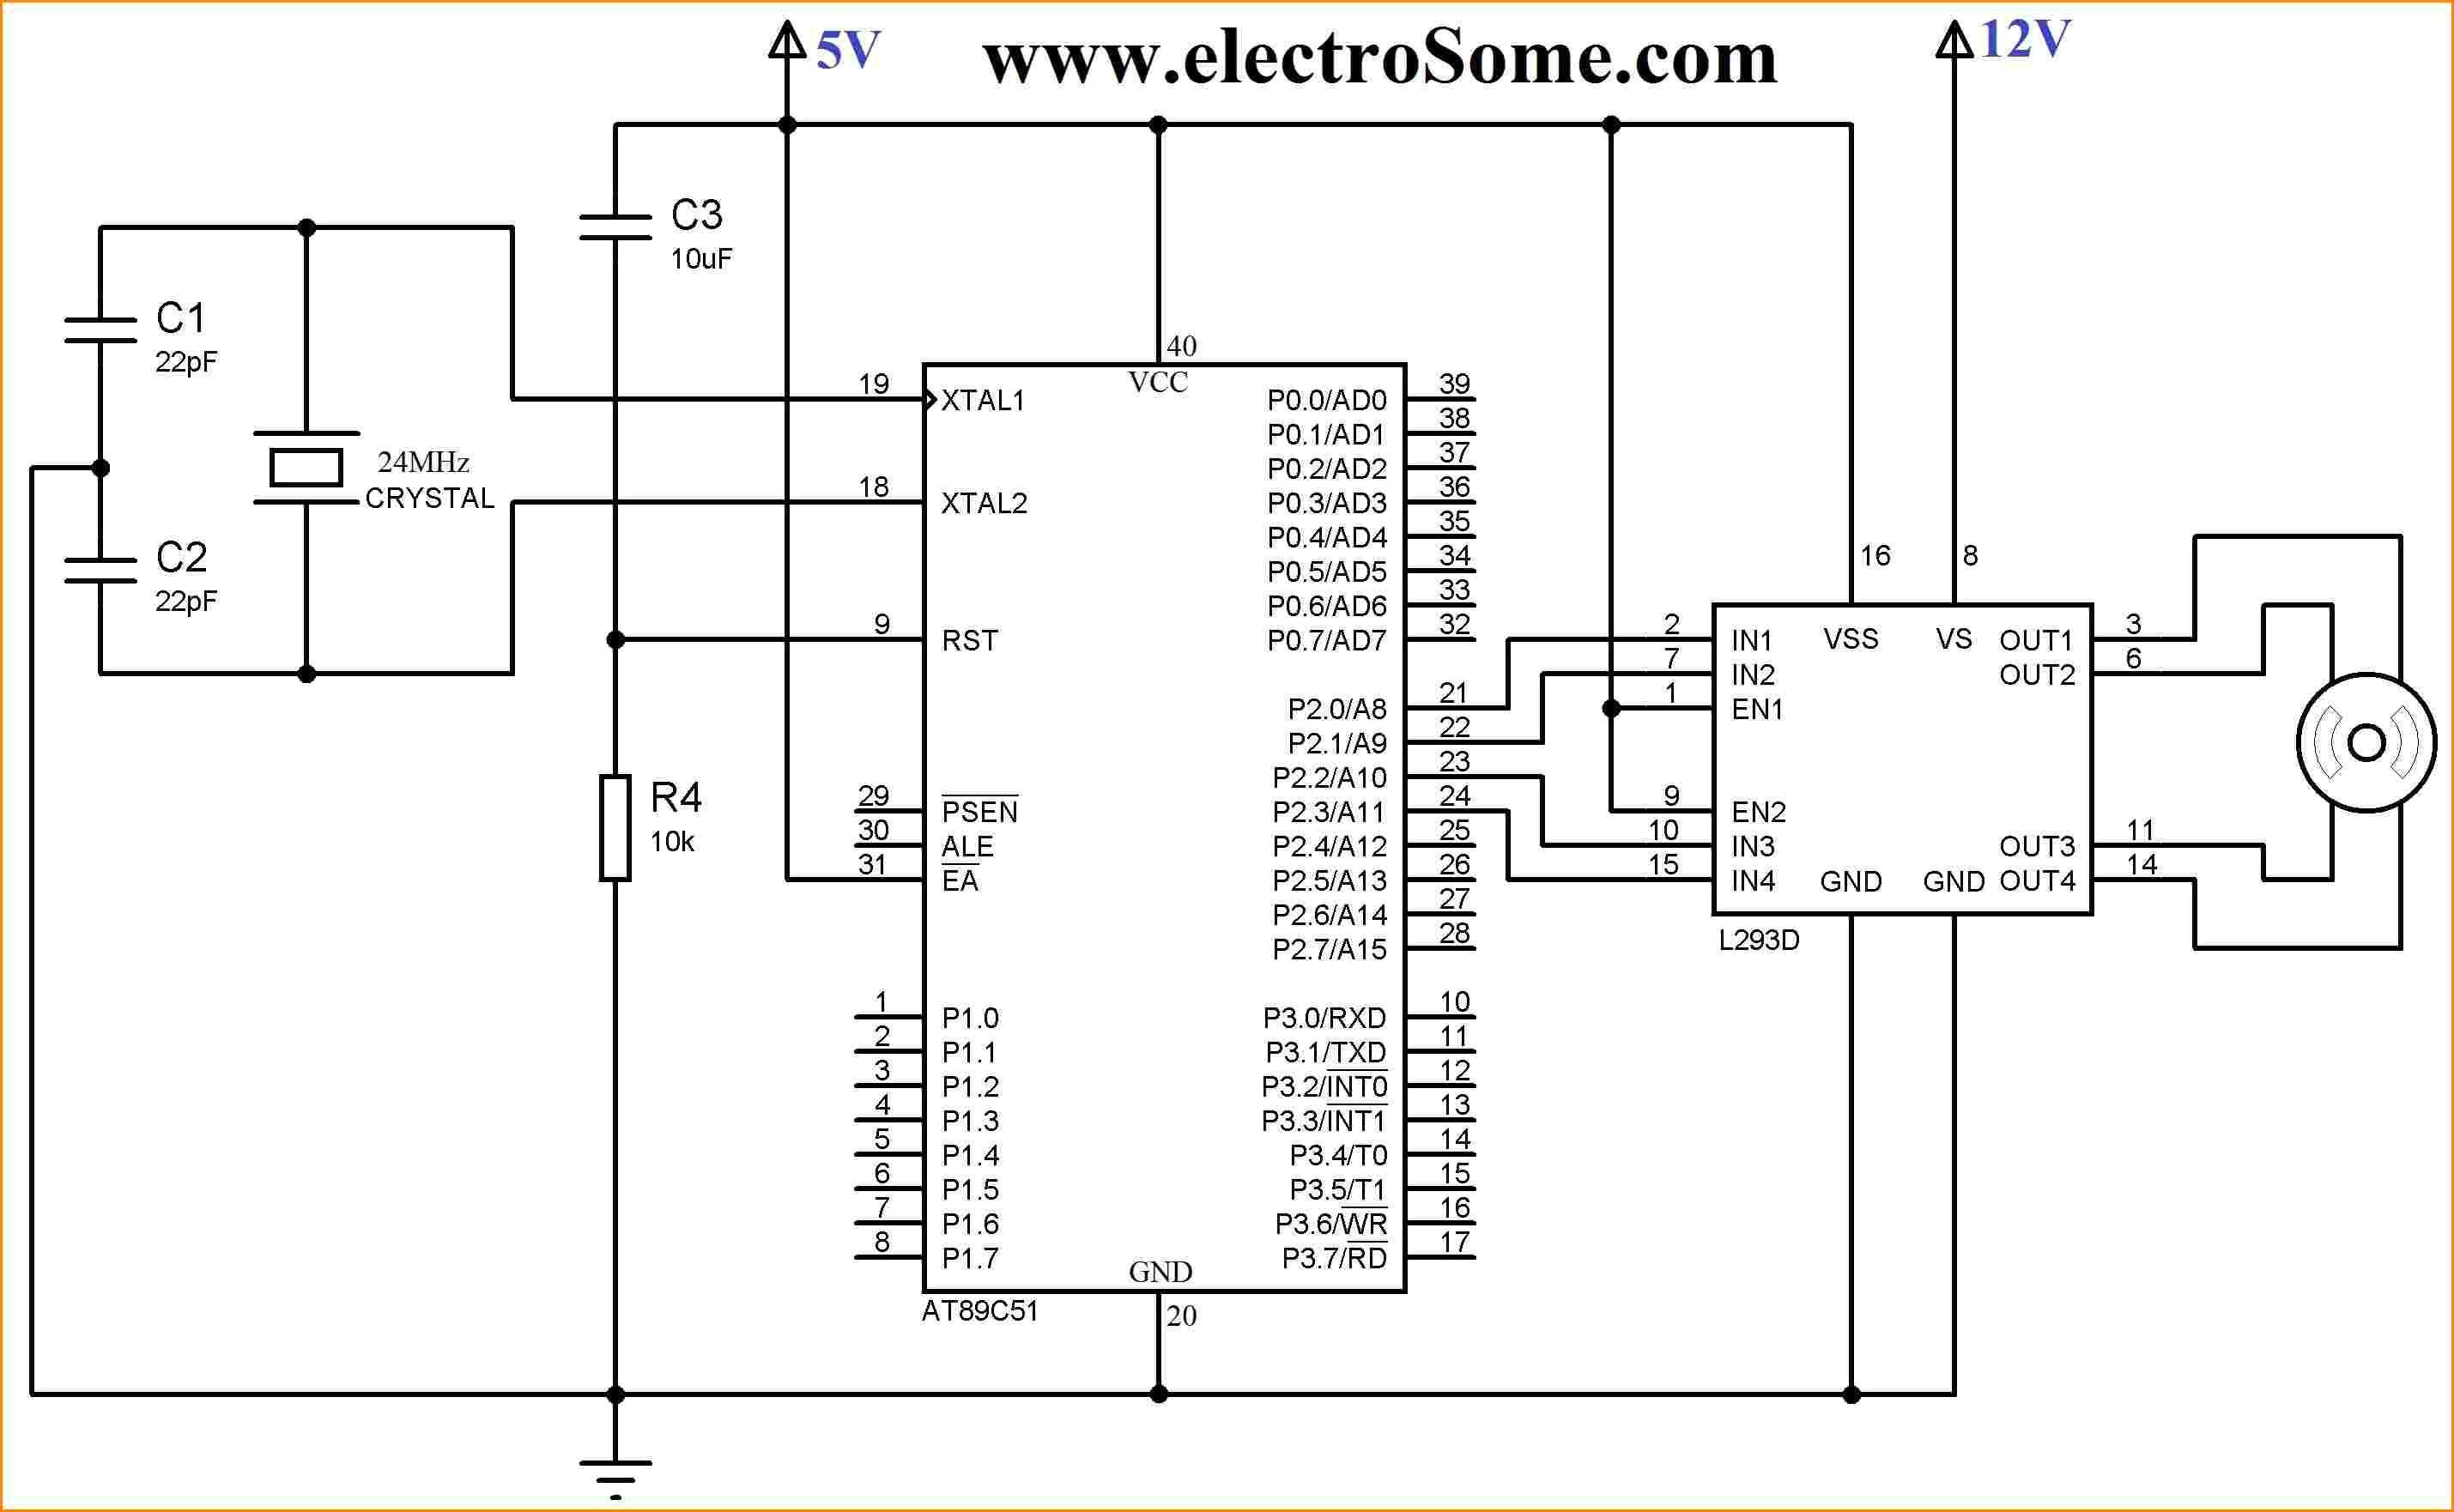 Bunker Hill Security Camera Wiring Diagram - Wiring Diagram for Honeywell Alarm Best Bunker Hill Security Camera Wiring Diagram originalstylophone 10o